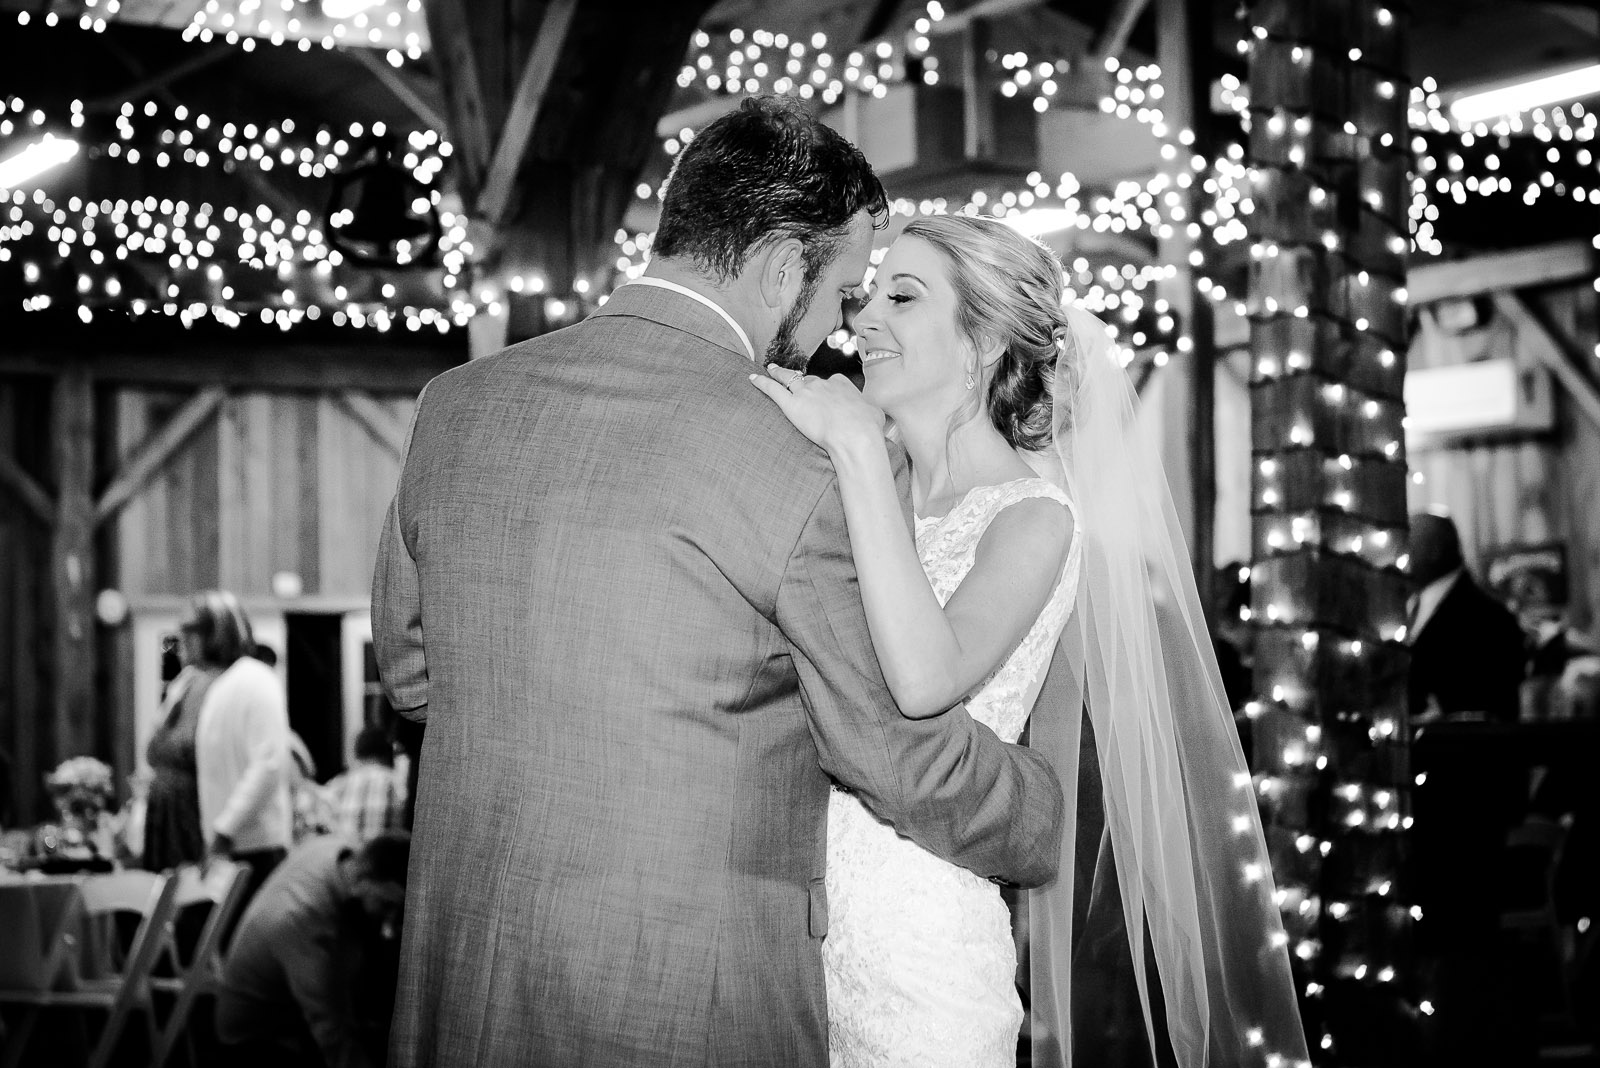 Eric_and_Christy_Photography_Blog_Wedding_Kelly_Matt-69